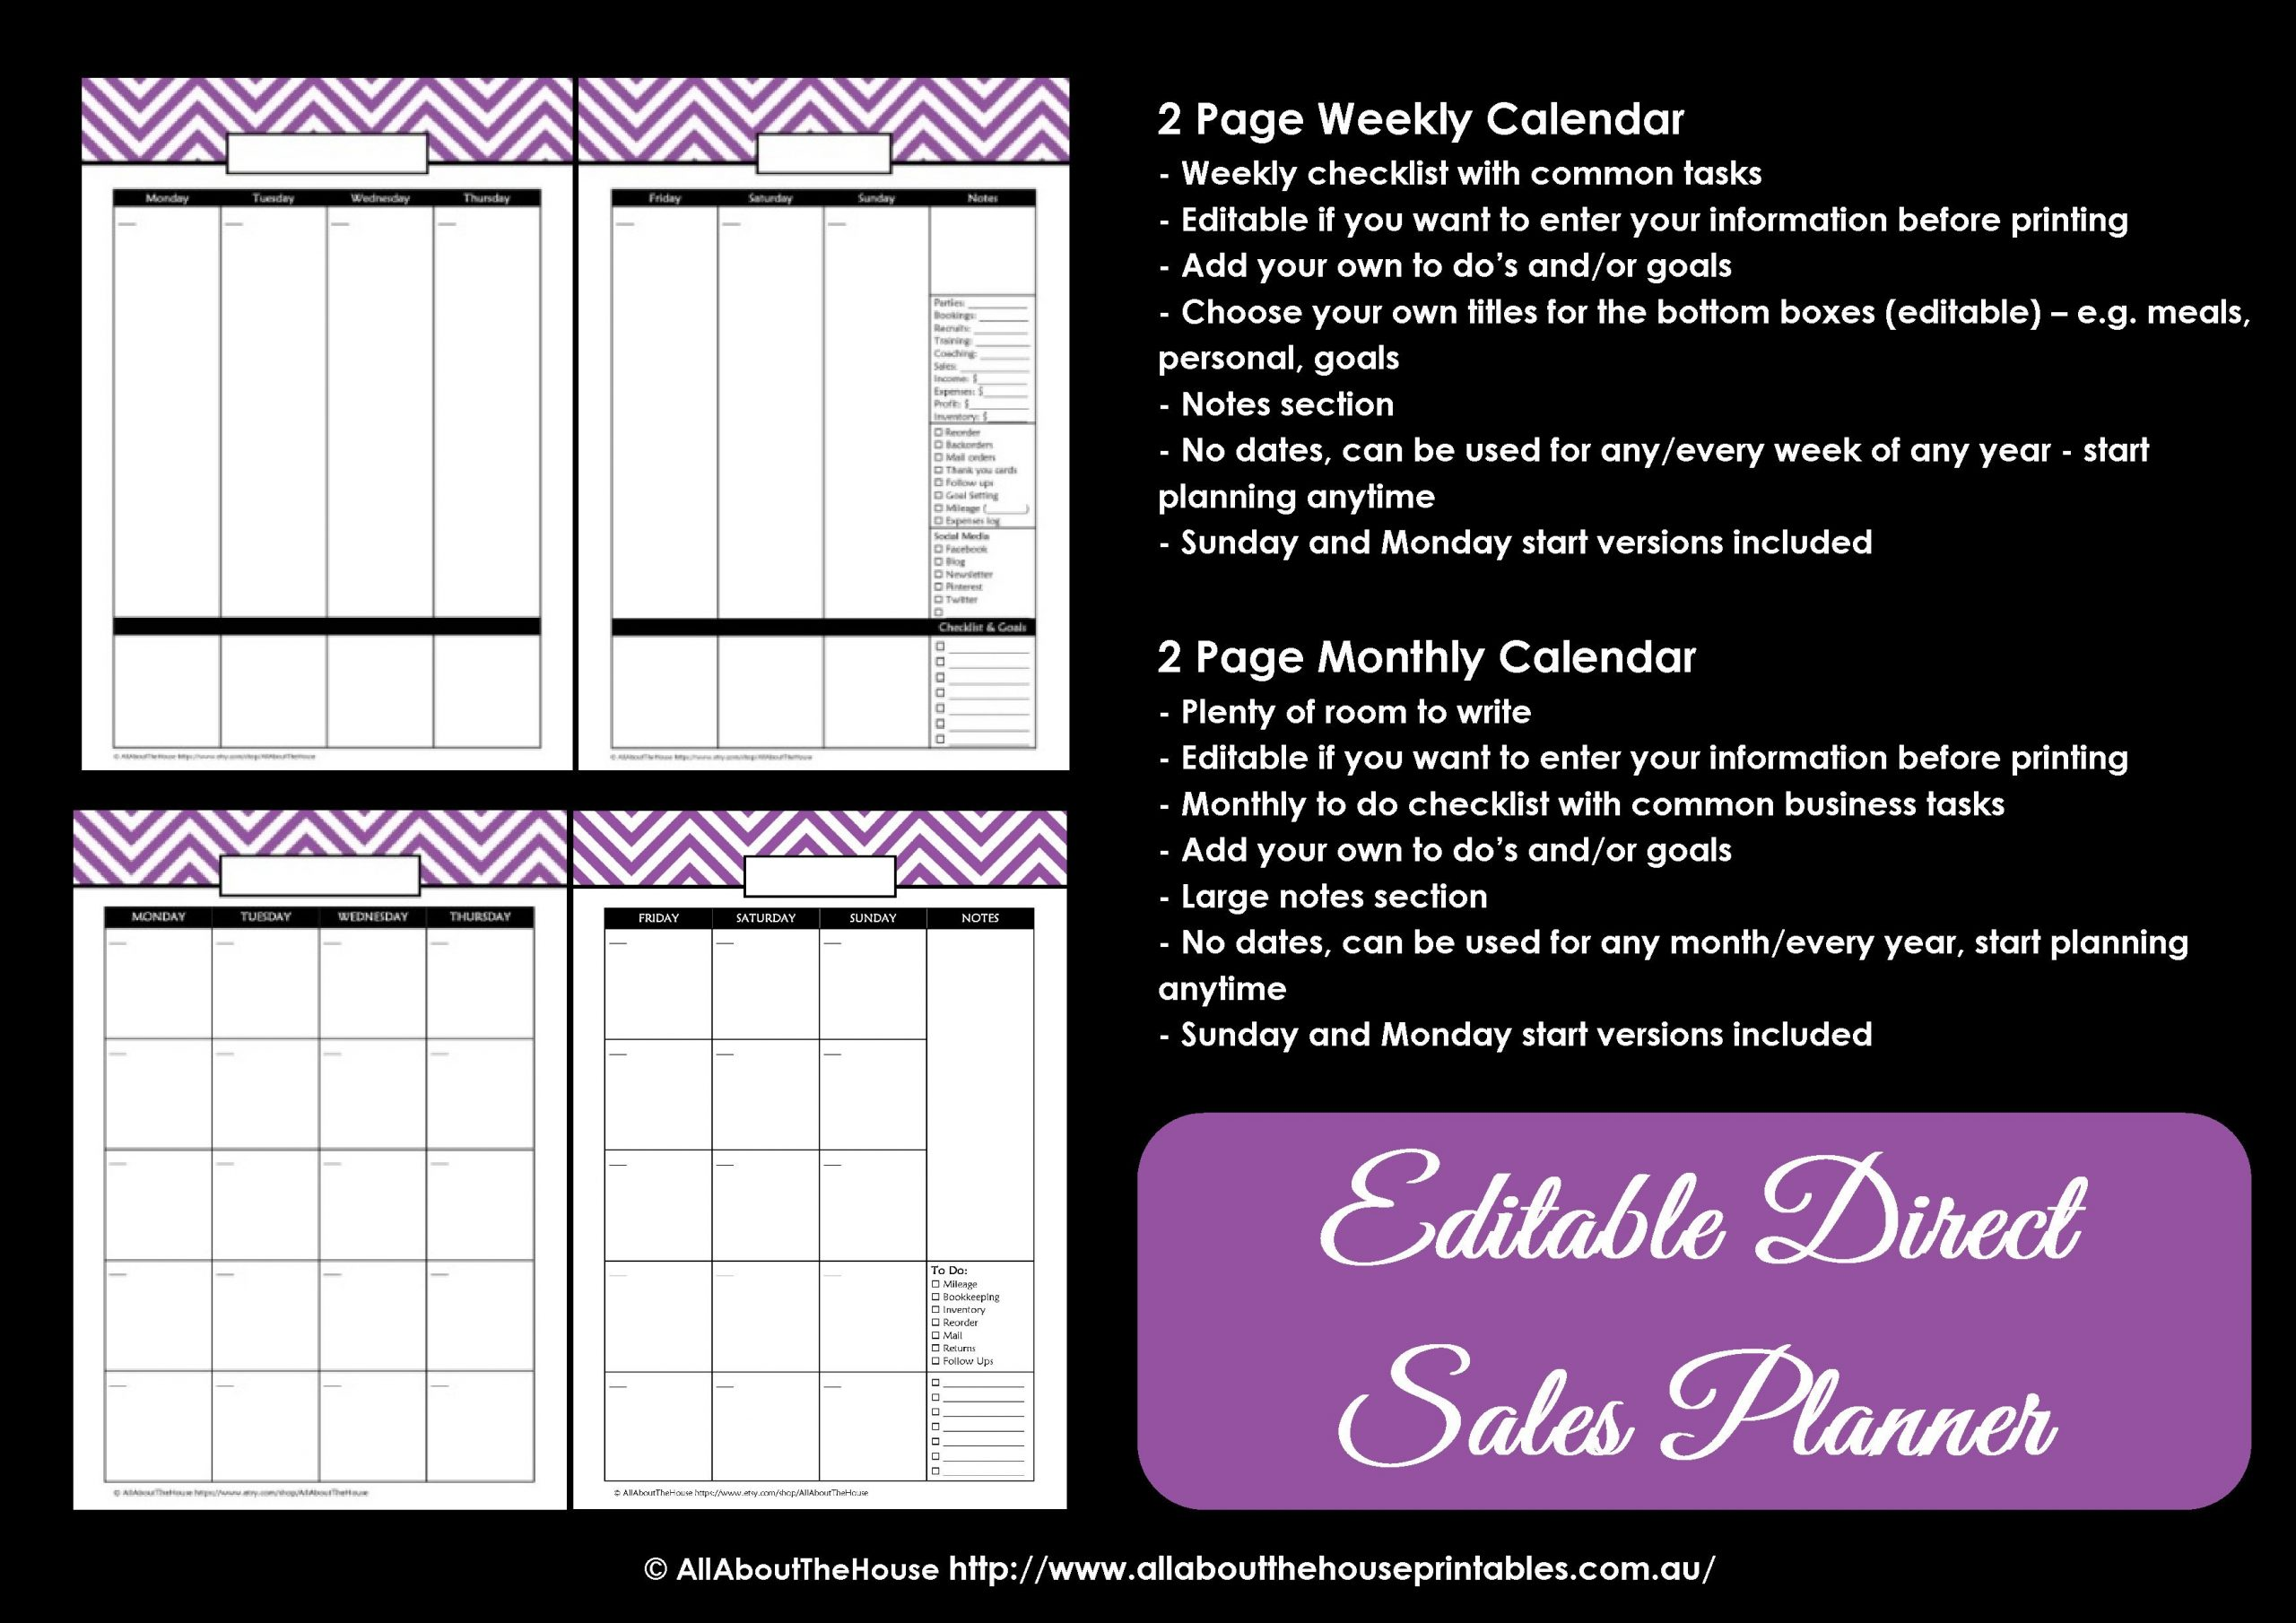 Direct Sales Planner – Editable | Allaboutthehouse Printables Editable One Week Calendar